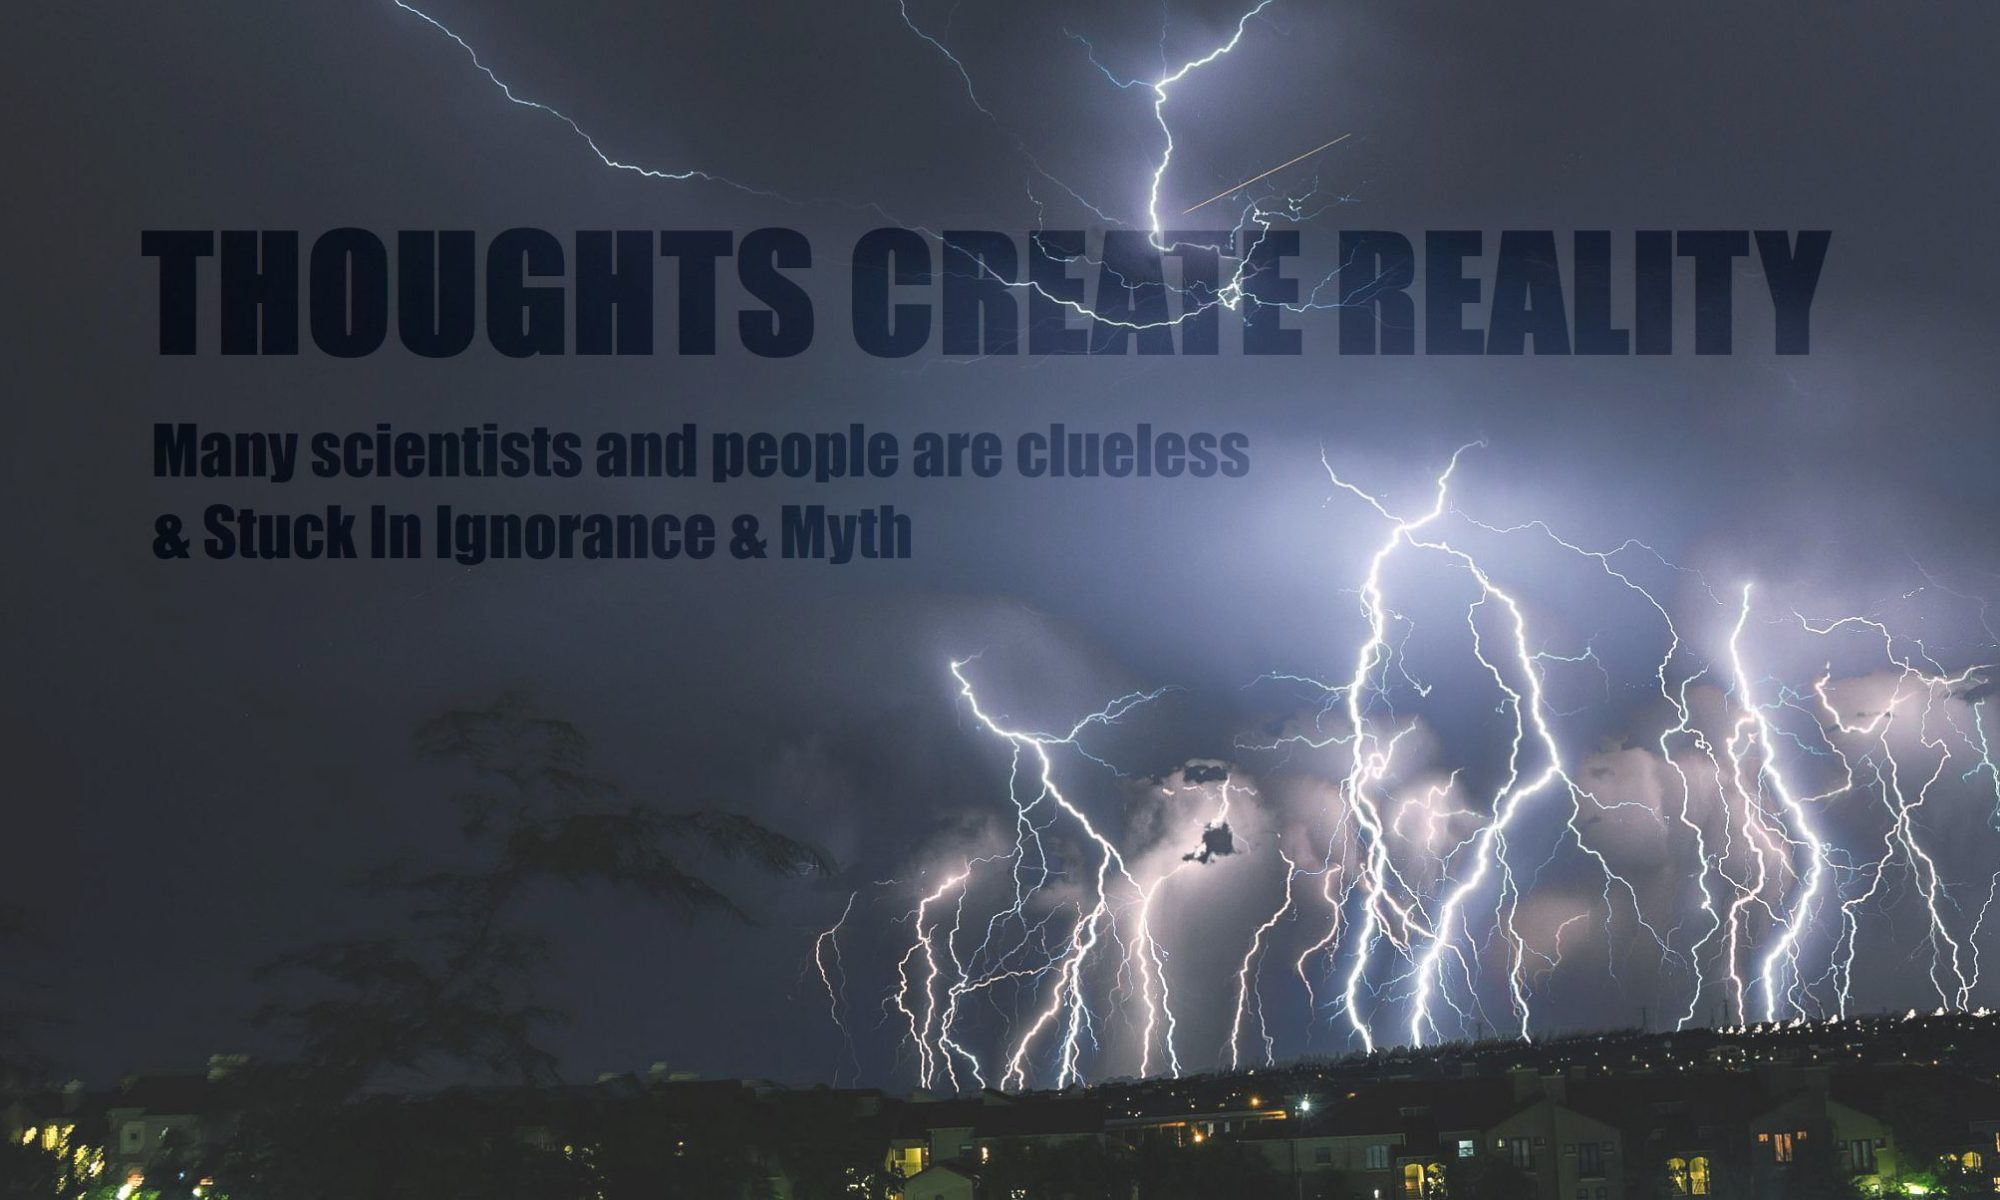 Many-scientists-people-are-clueless-Stuck-In-Ignorance-Myth-1